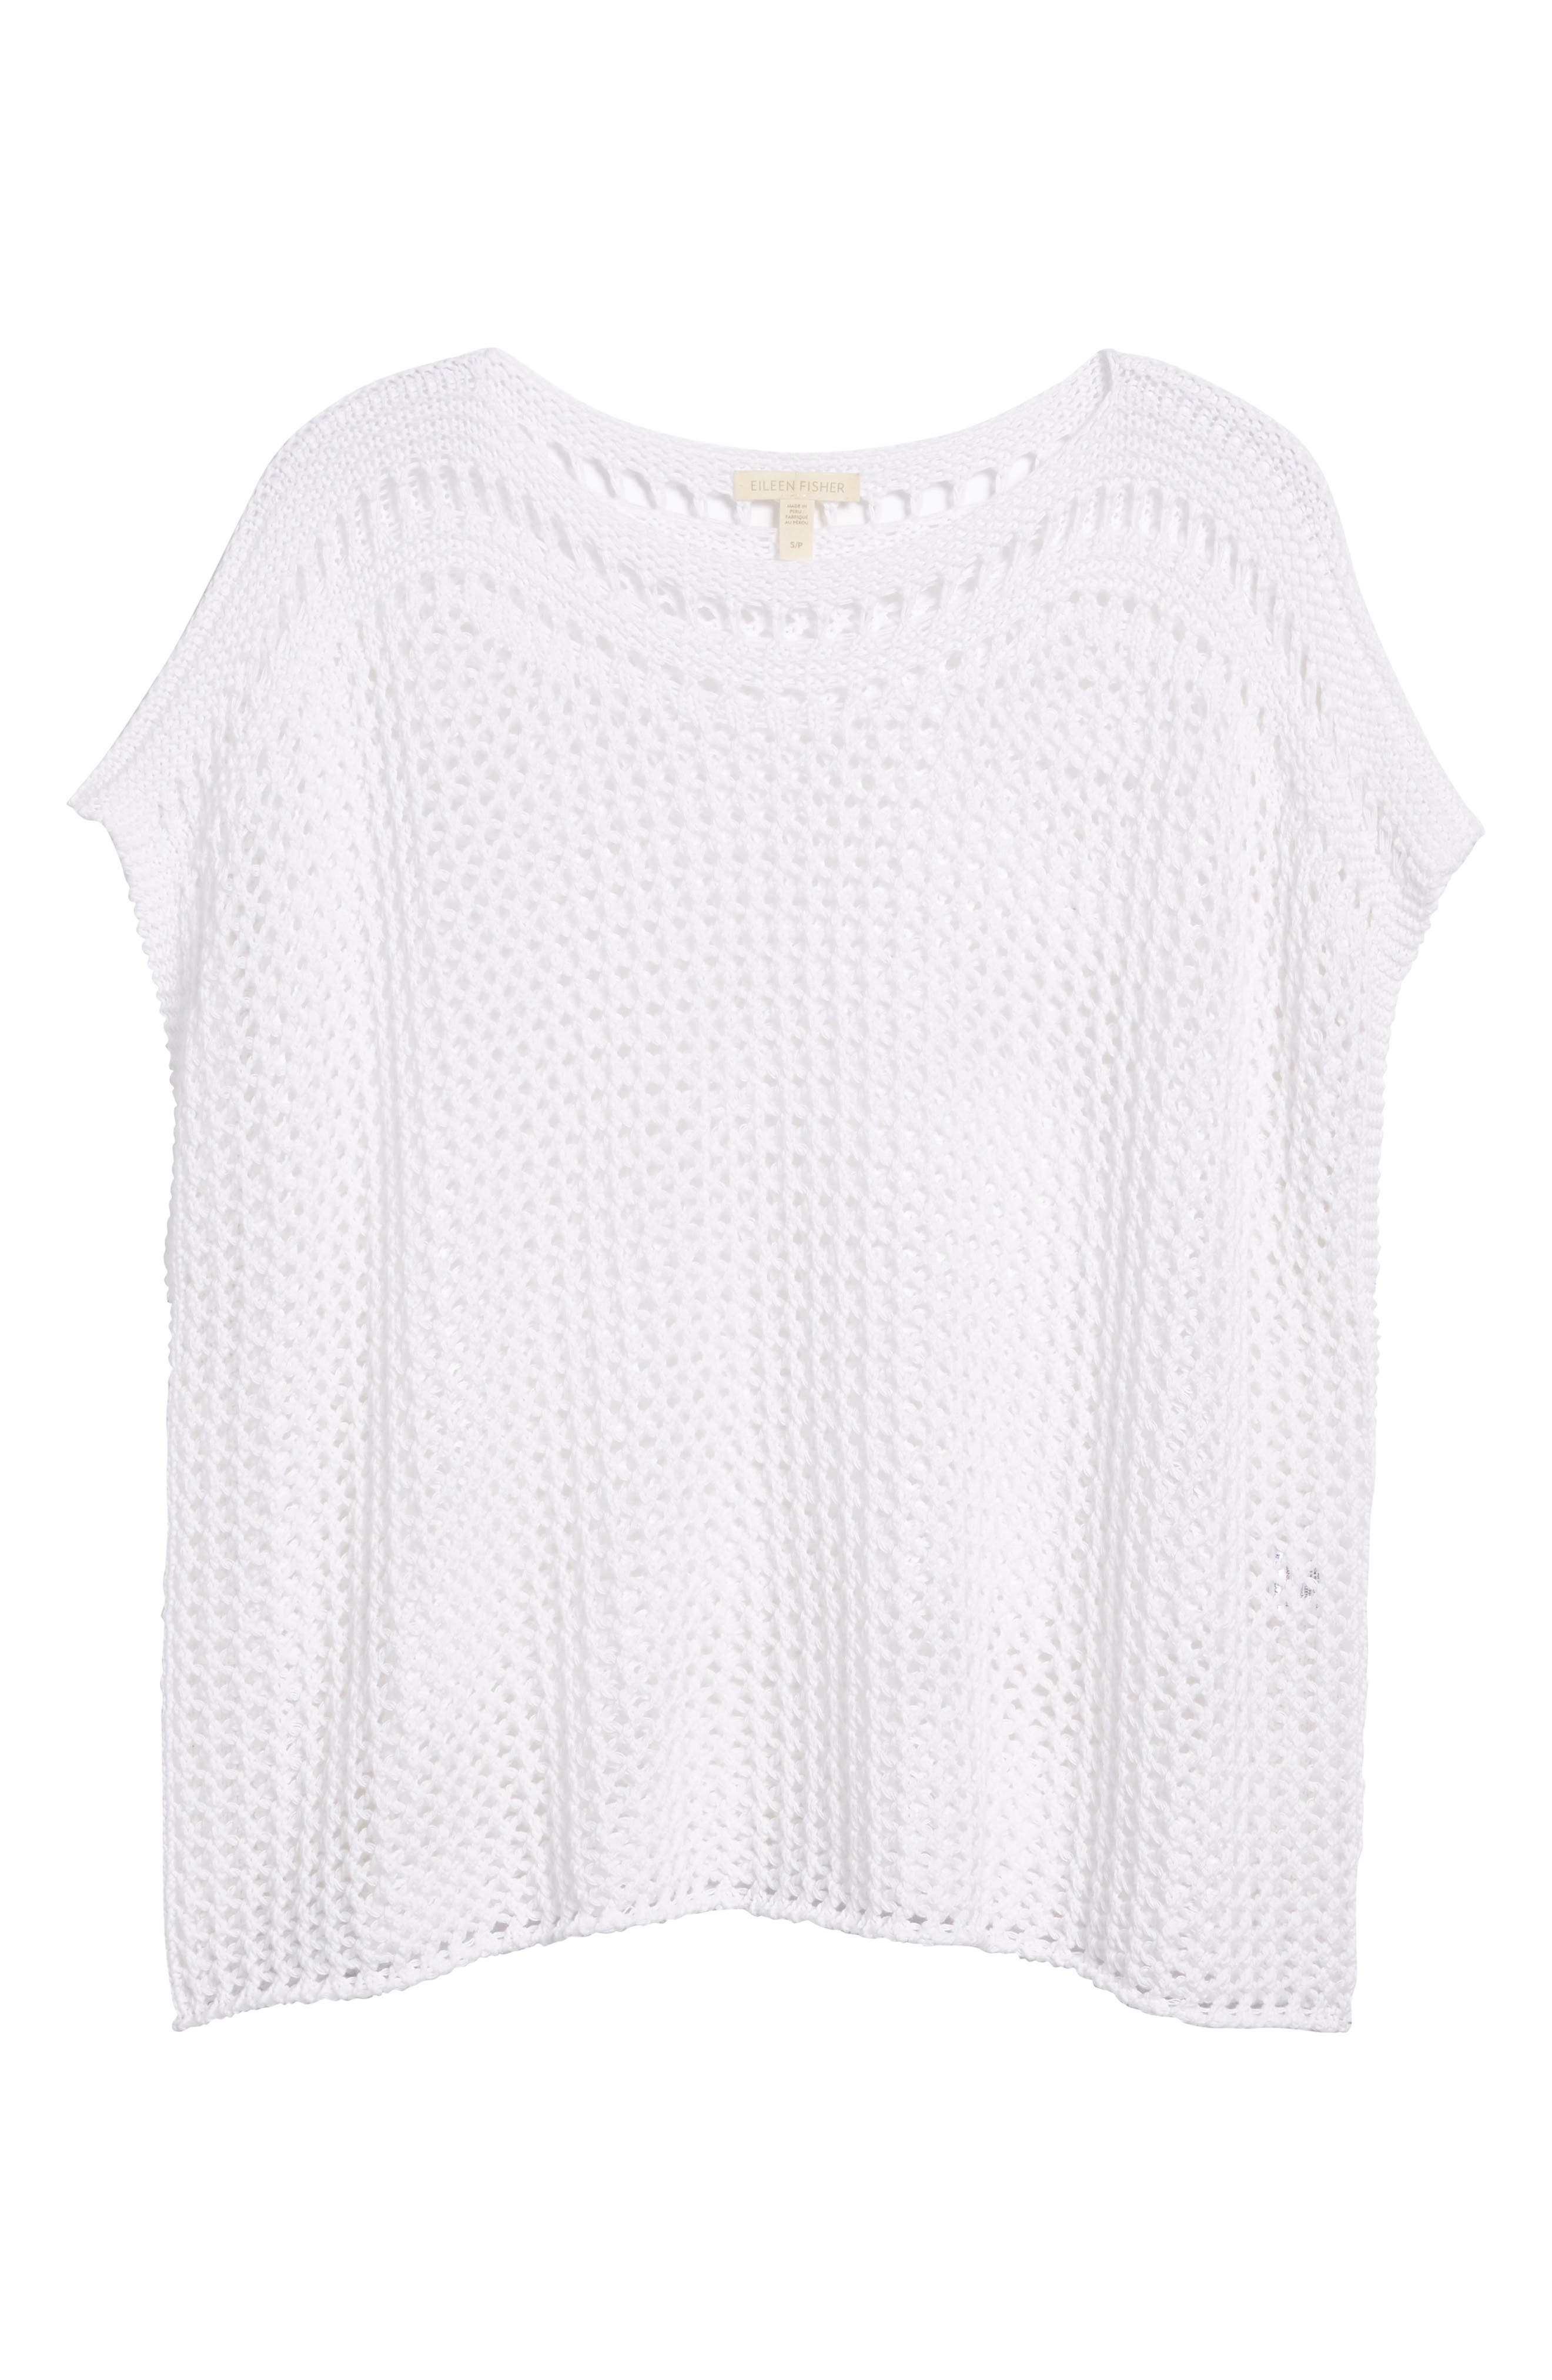 Organic Cotton Sweater,                             Alternate thumbnail 6, color,                             100